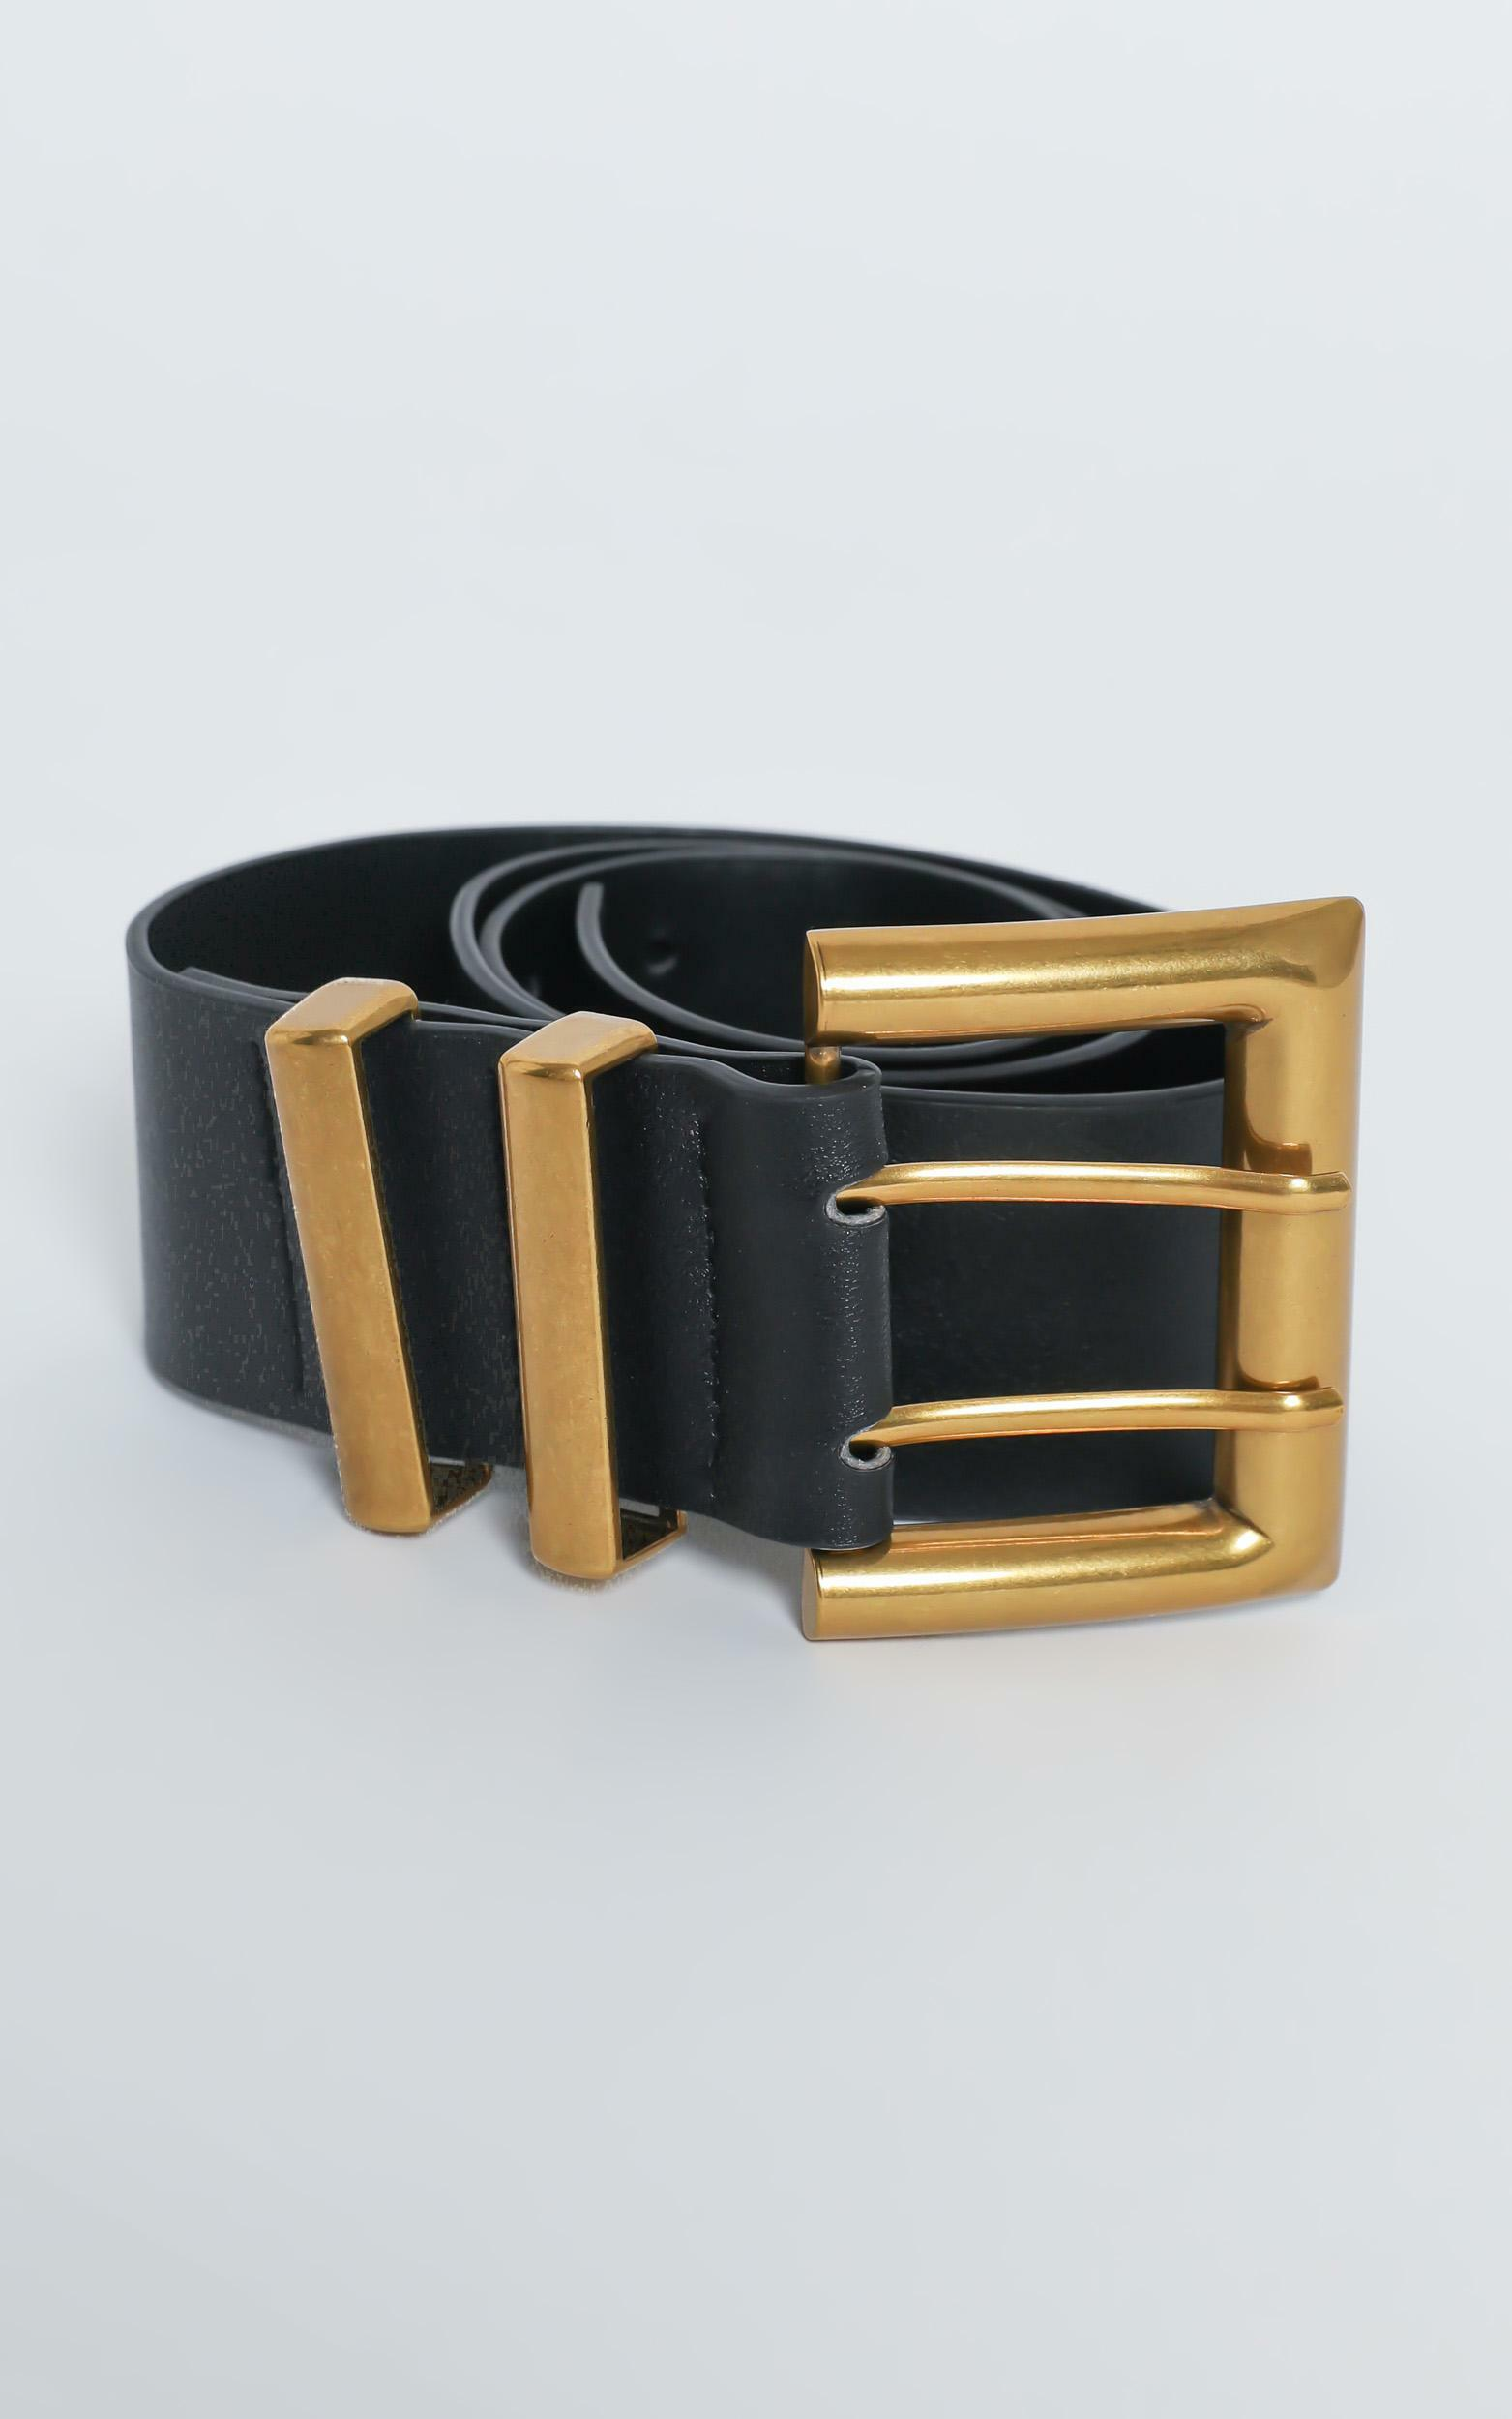 Pair It Back With Belt in Black and Gold, , hi-res image number null